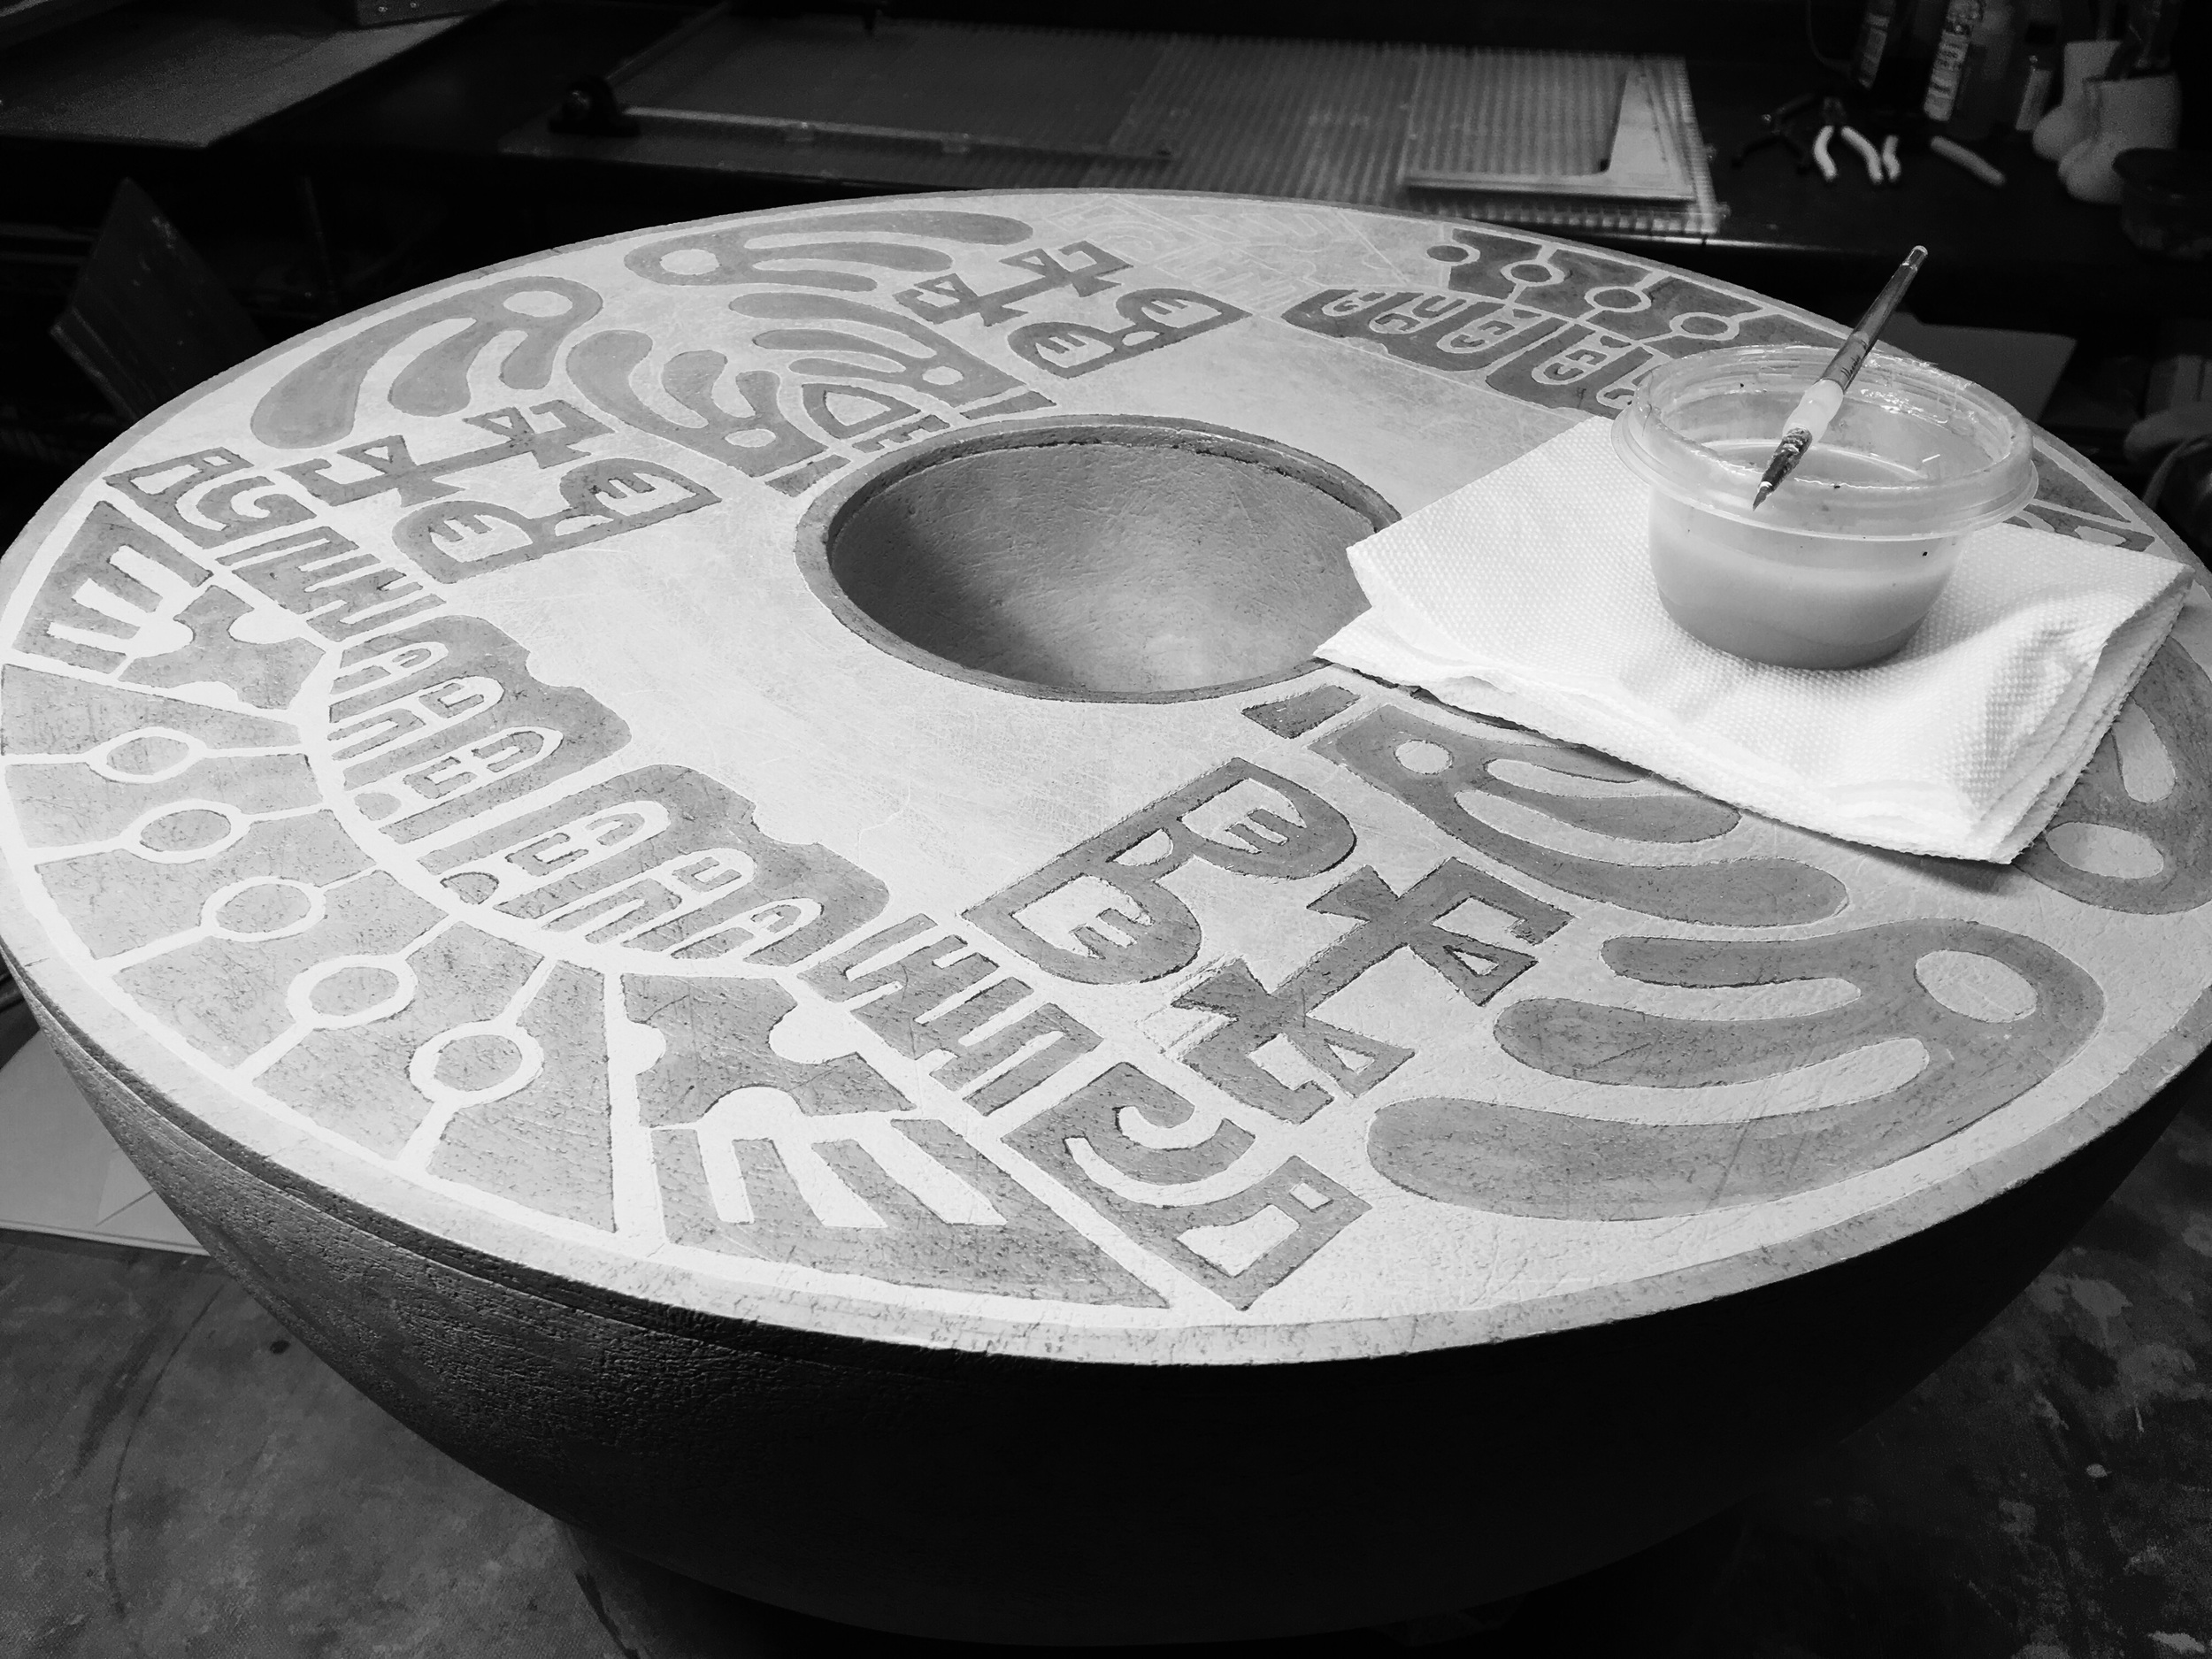 Shellac design is brushed on before sponging relief design